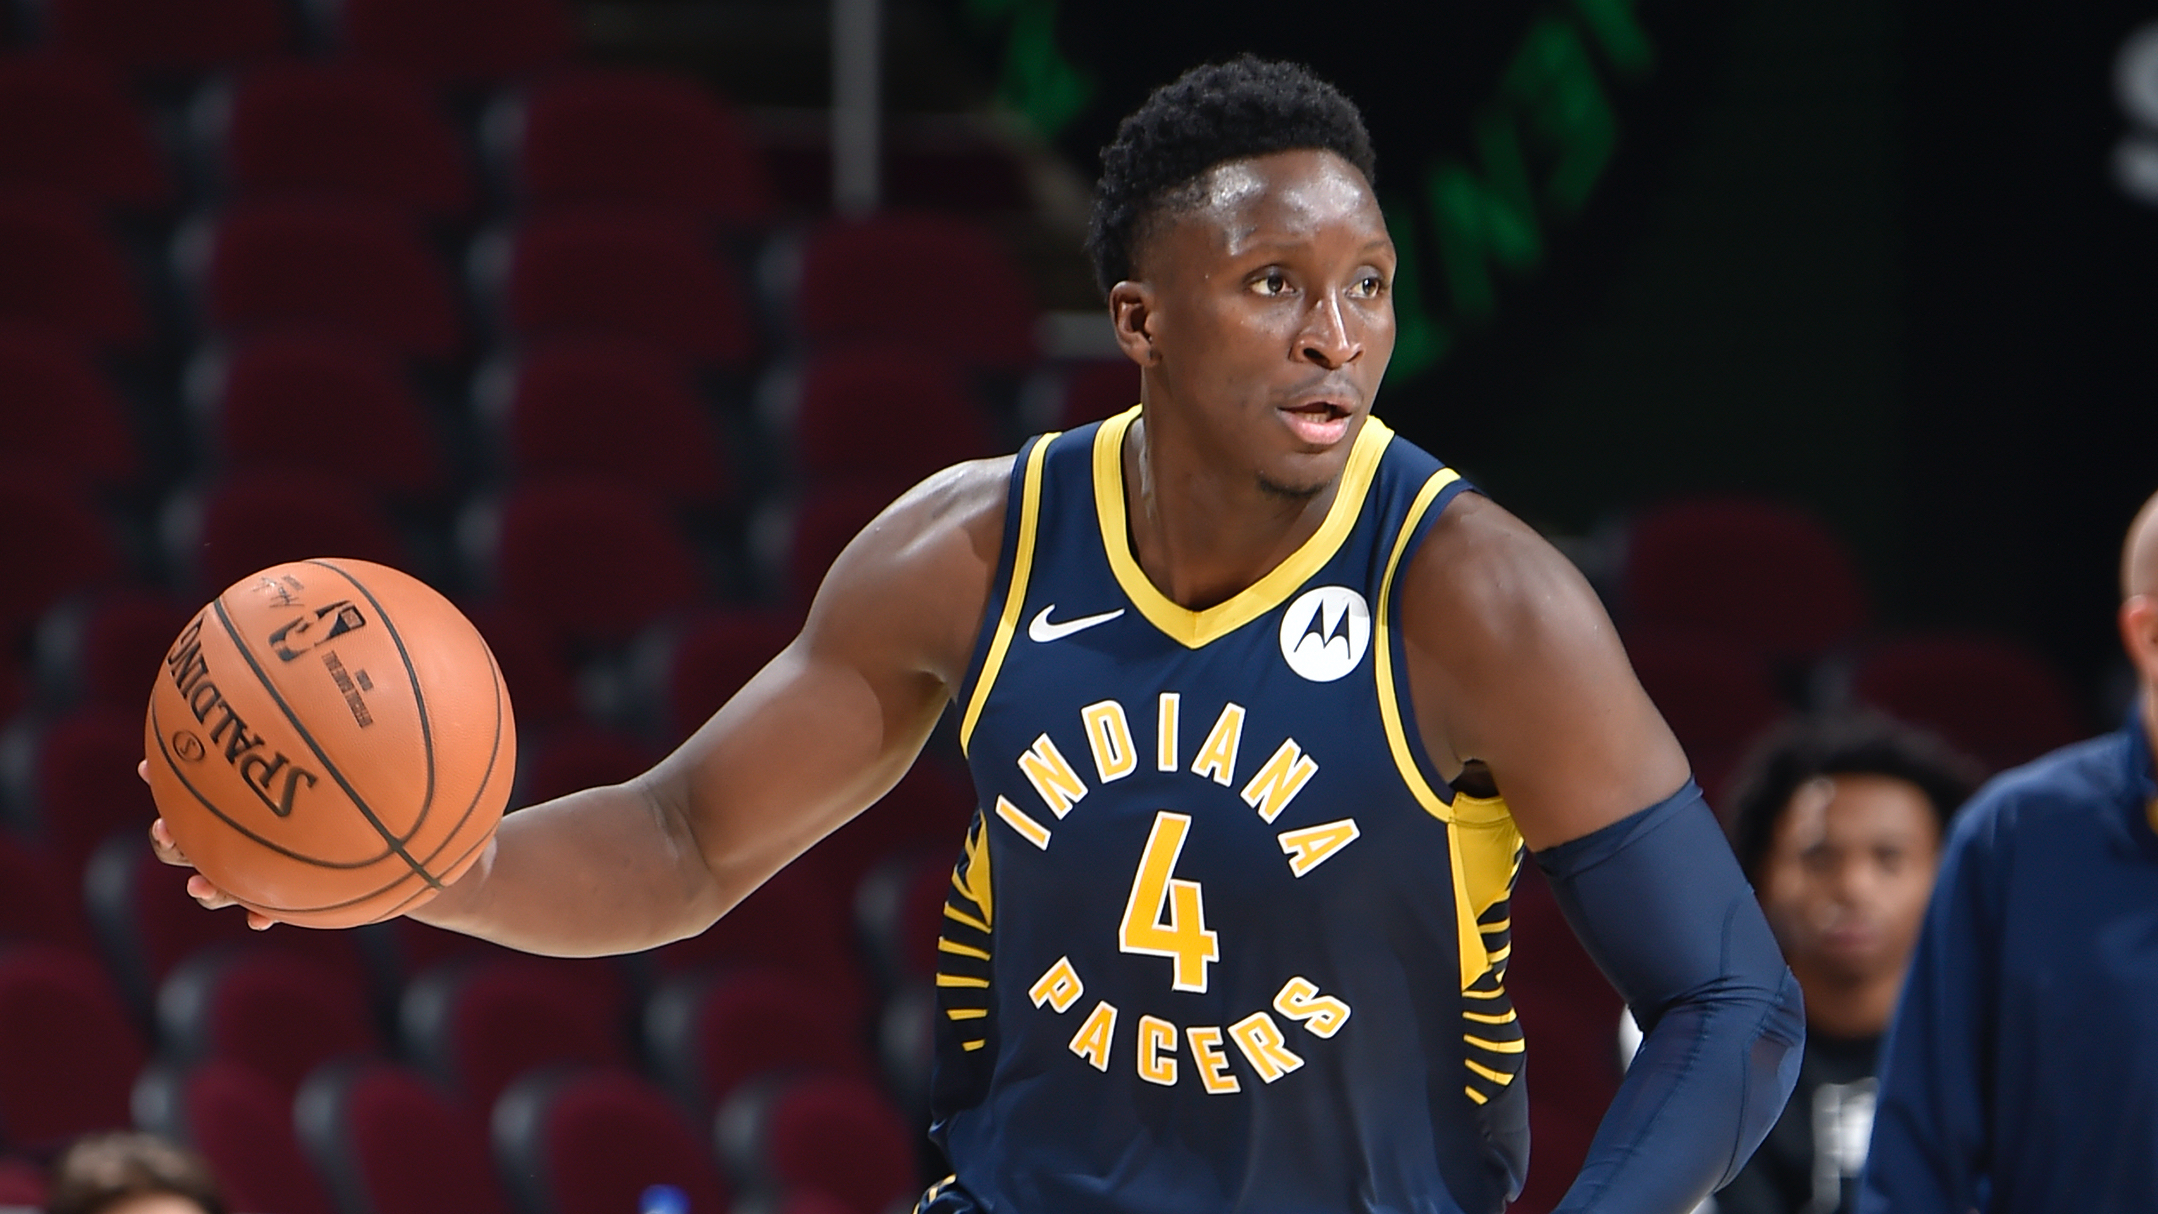 Pacers pelican game sport betting plus minus betting sports websites